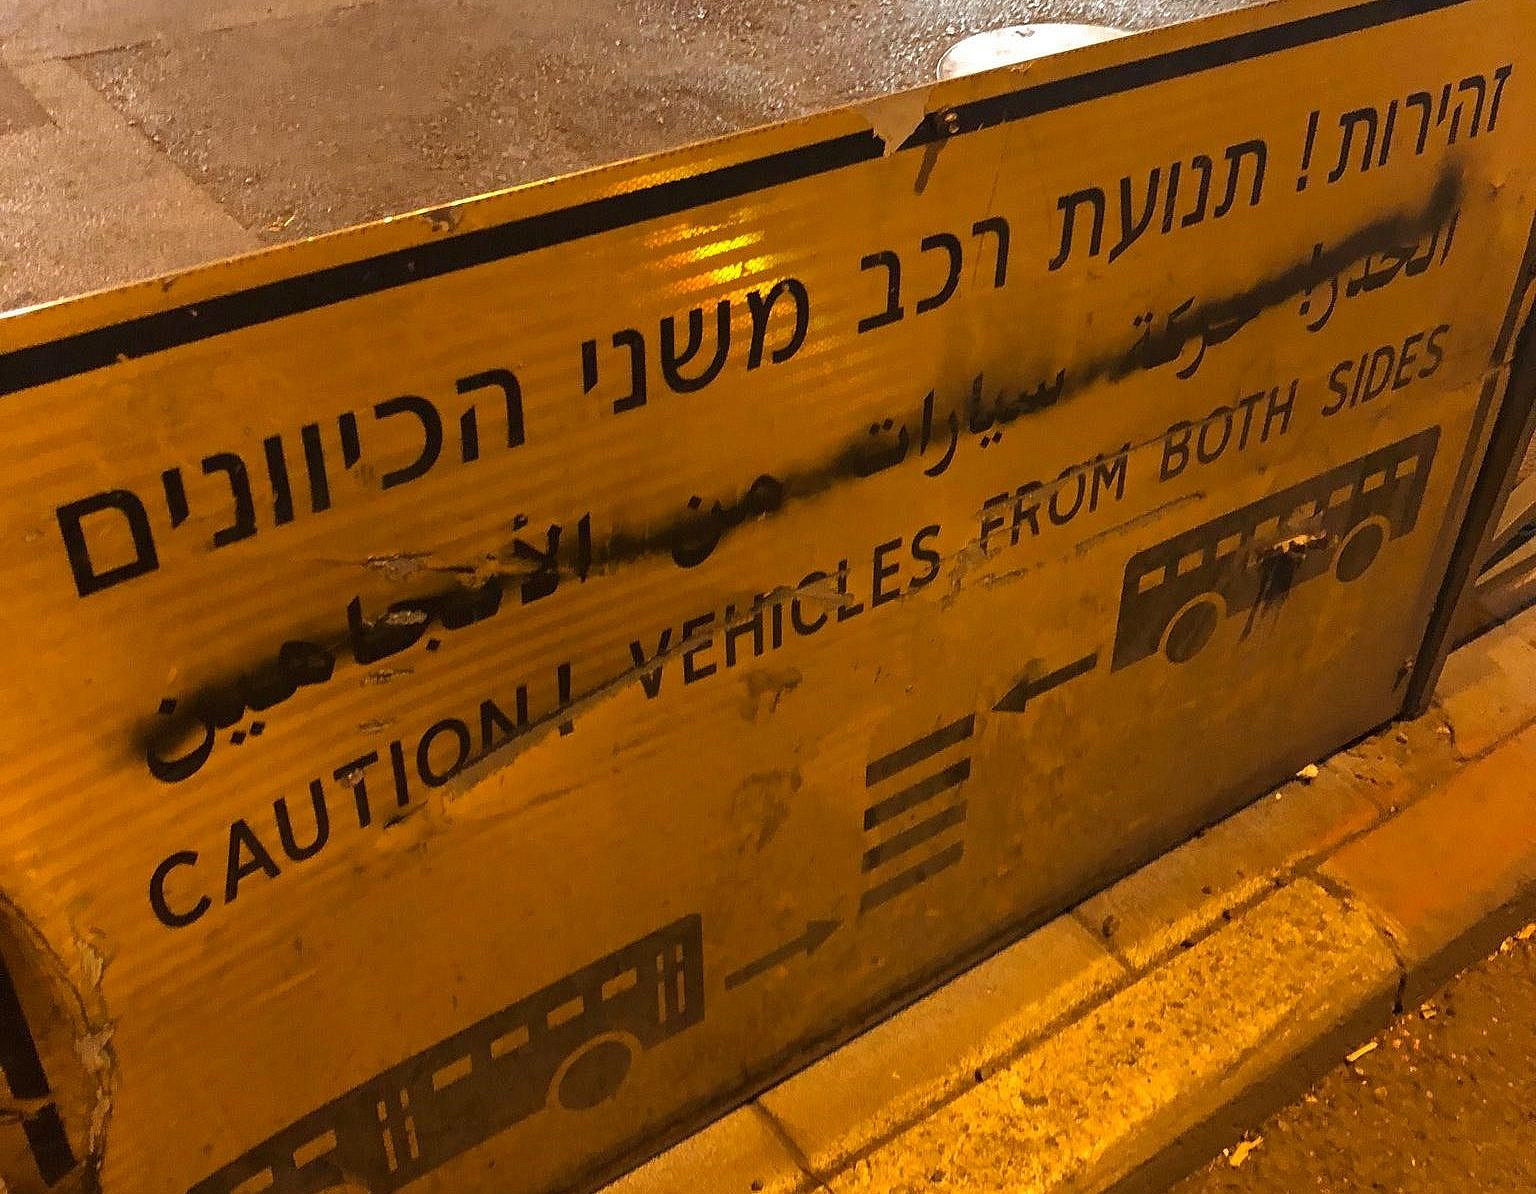 Arabic has been covered by black spray paint on a sign at a pedestrian crossing in Me'ah She'arim, Jerusalem. (Ben Reiff)